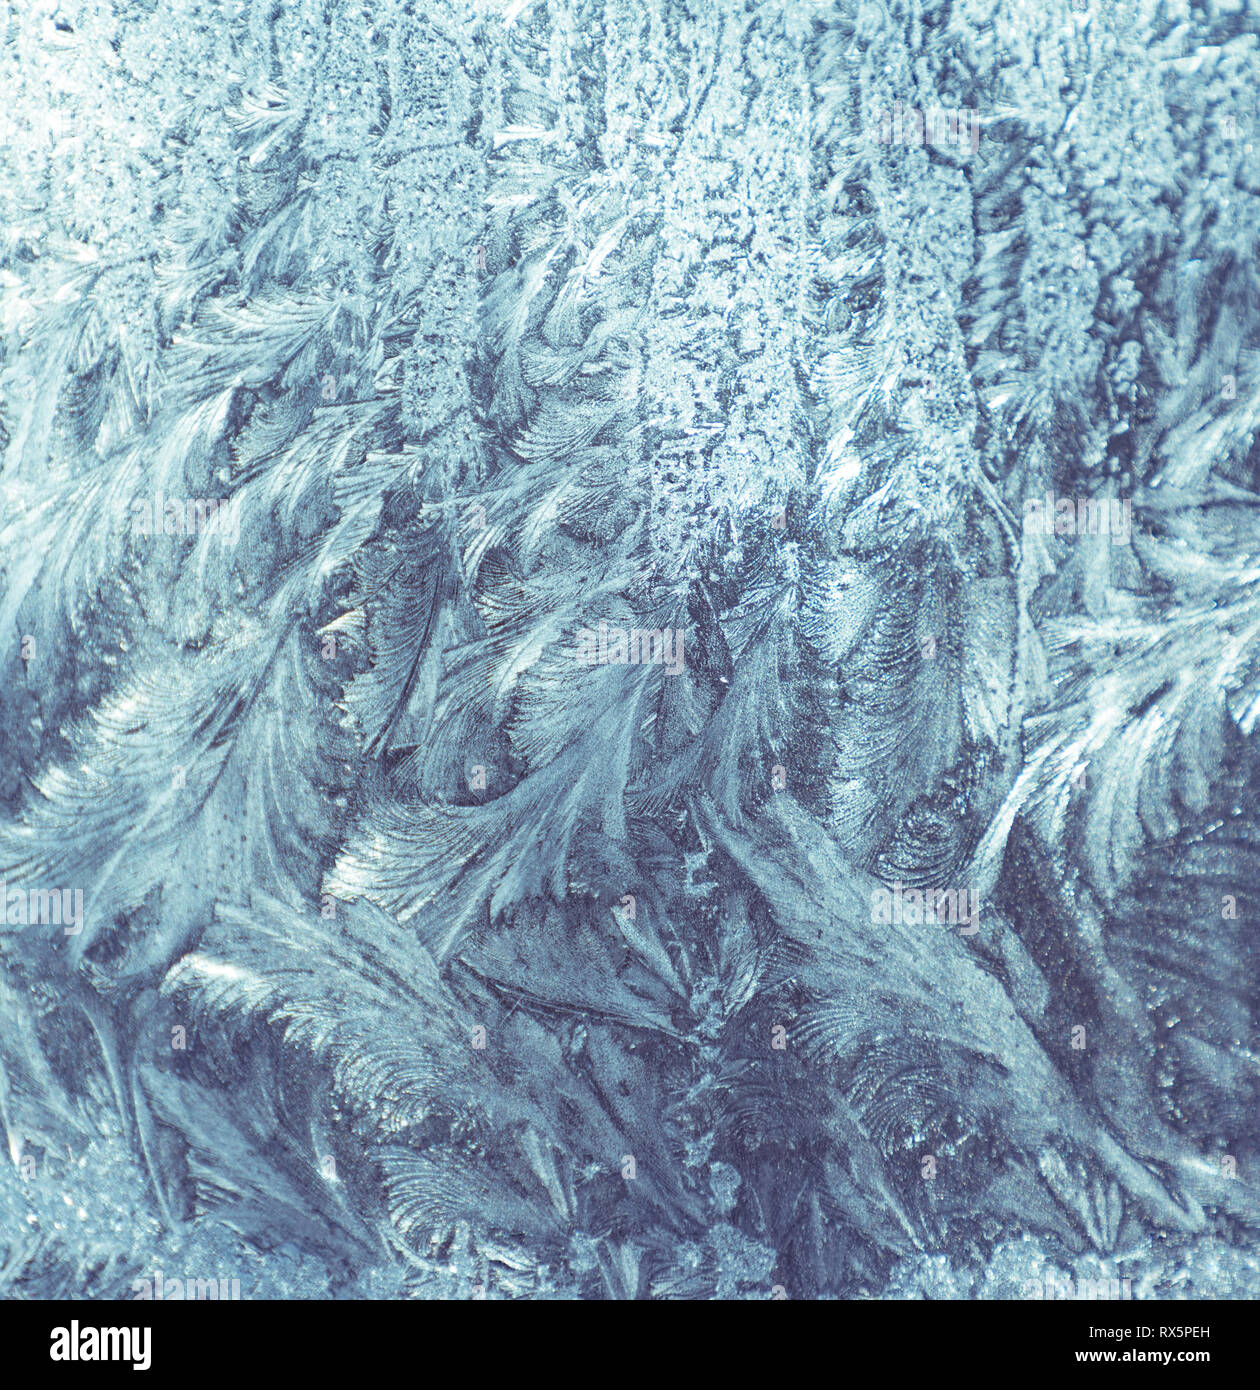 Frostwork. Decorative ice crystals on a window - Stock Image